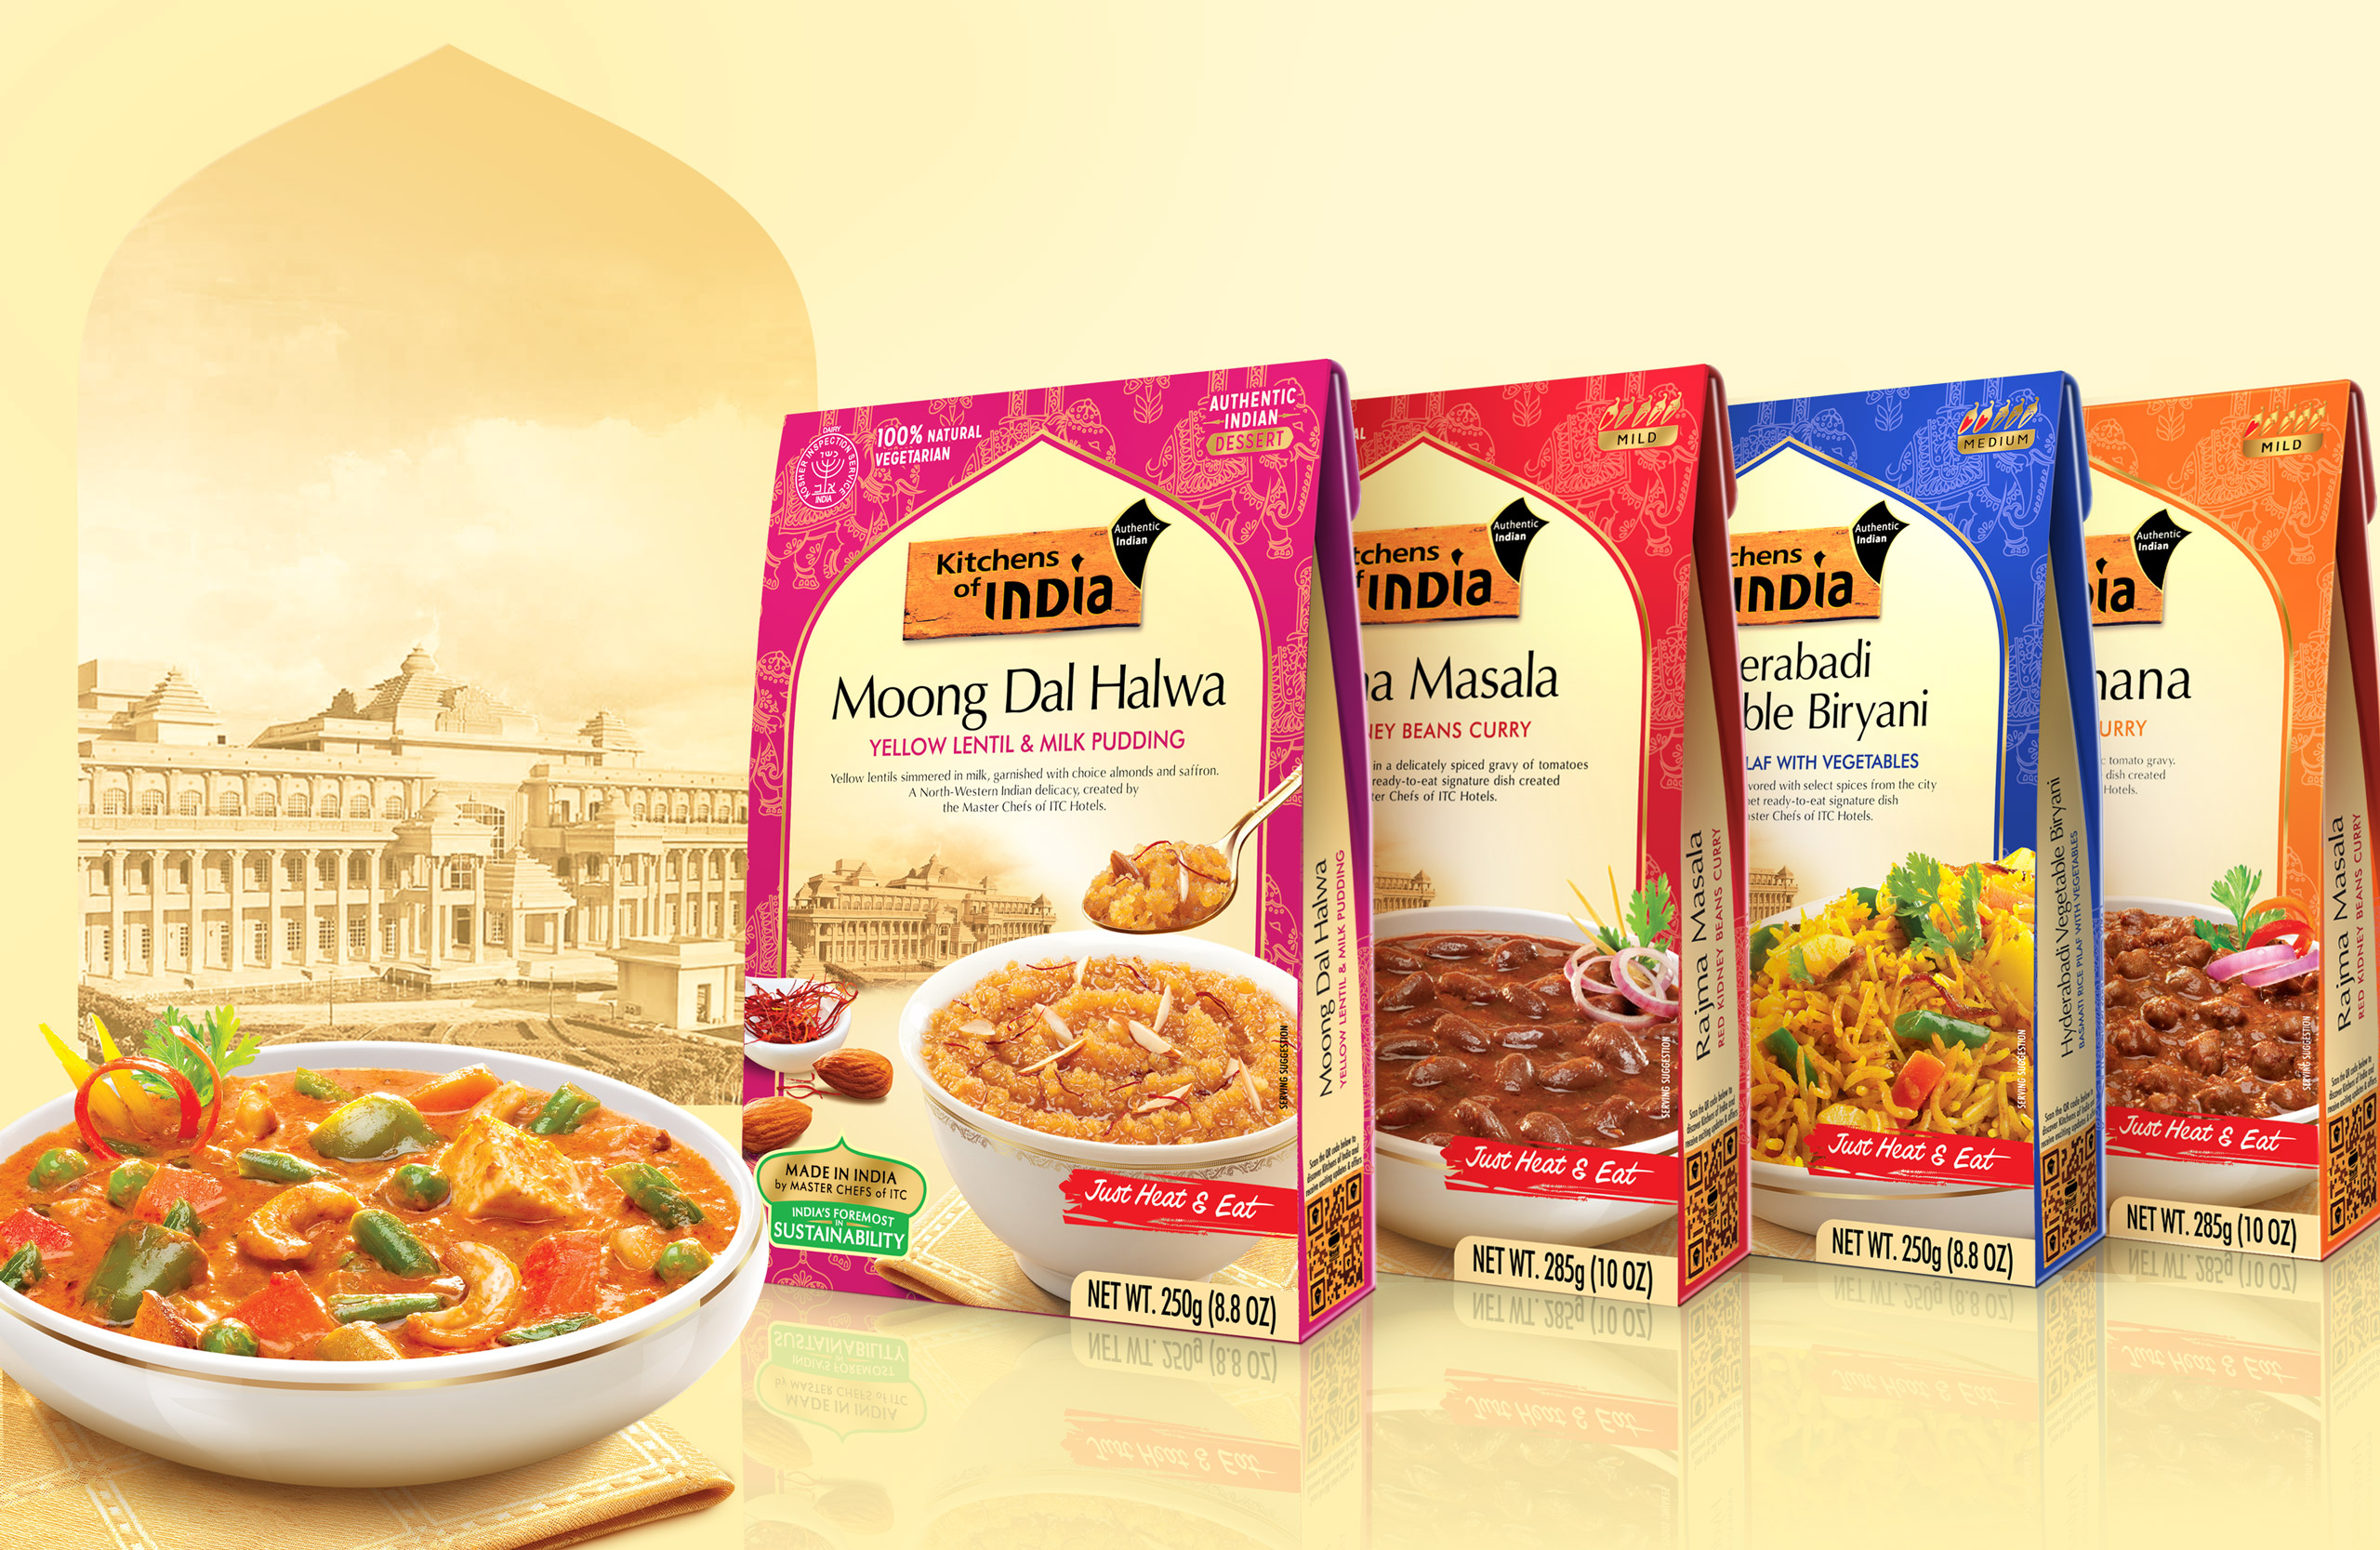 Branding and packaging design for ready to eat, authentic Indian food product from ITC foods, India